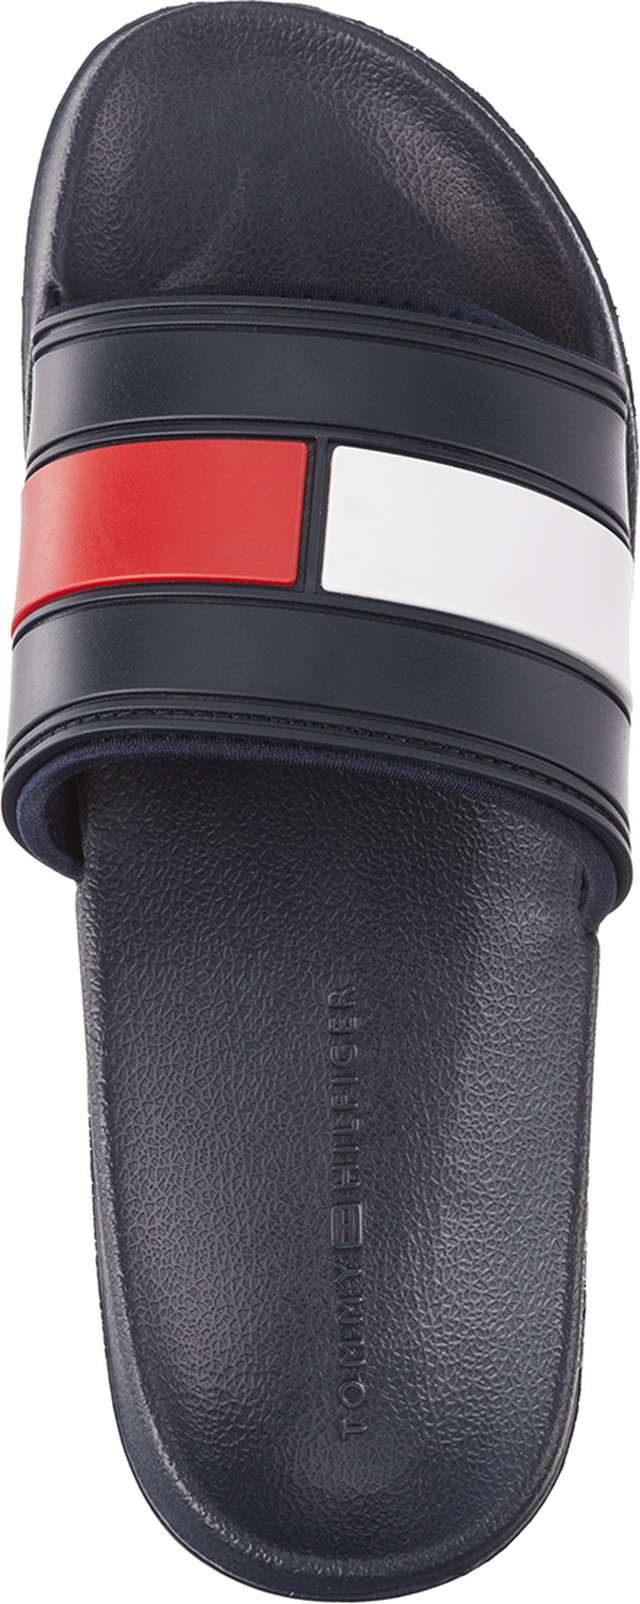 Klapki Tommy Hilfiger  <br/><small>FLAG POOL SLIDE 020 NAVY/RED/WHITE </small>  FM0FM01006-020